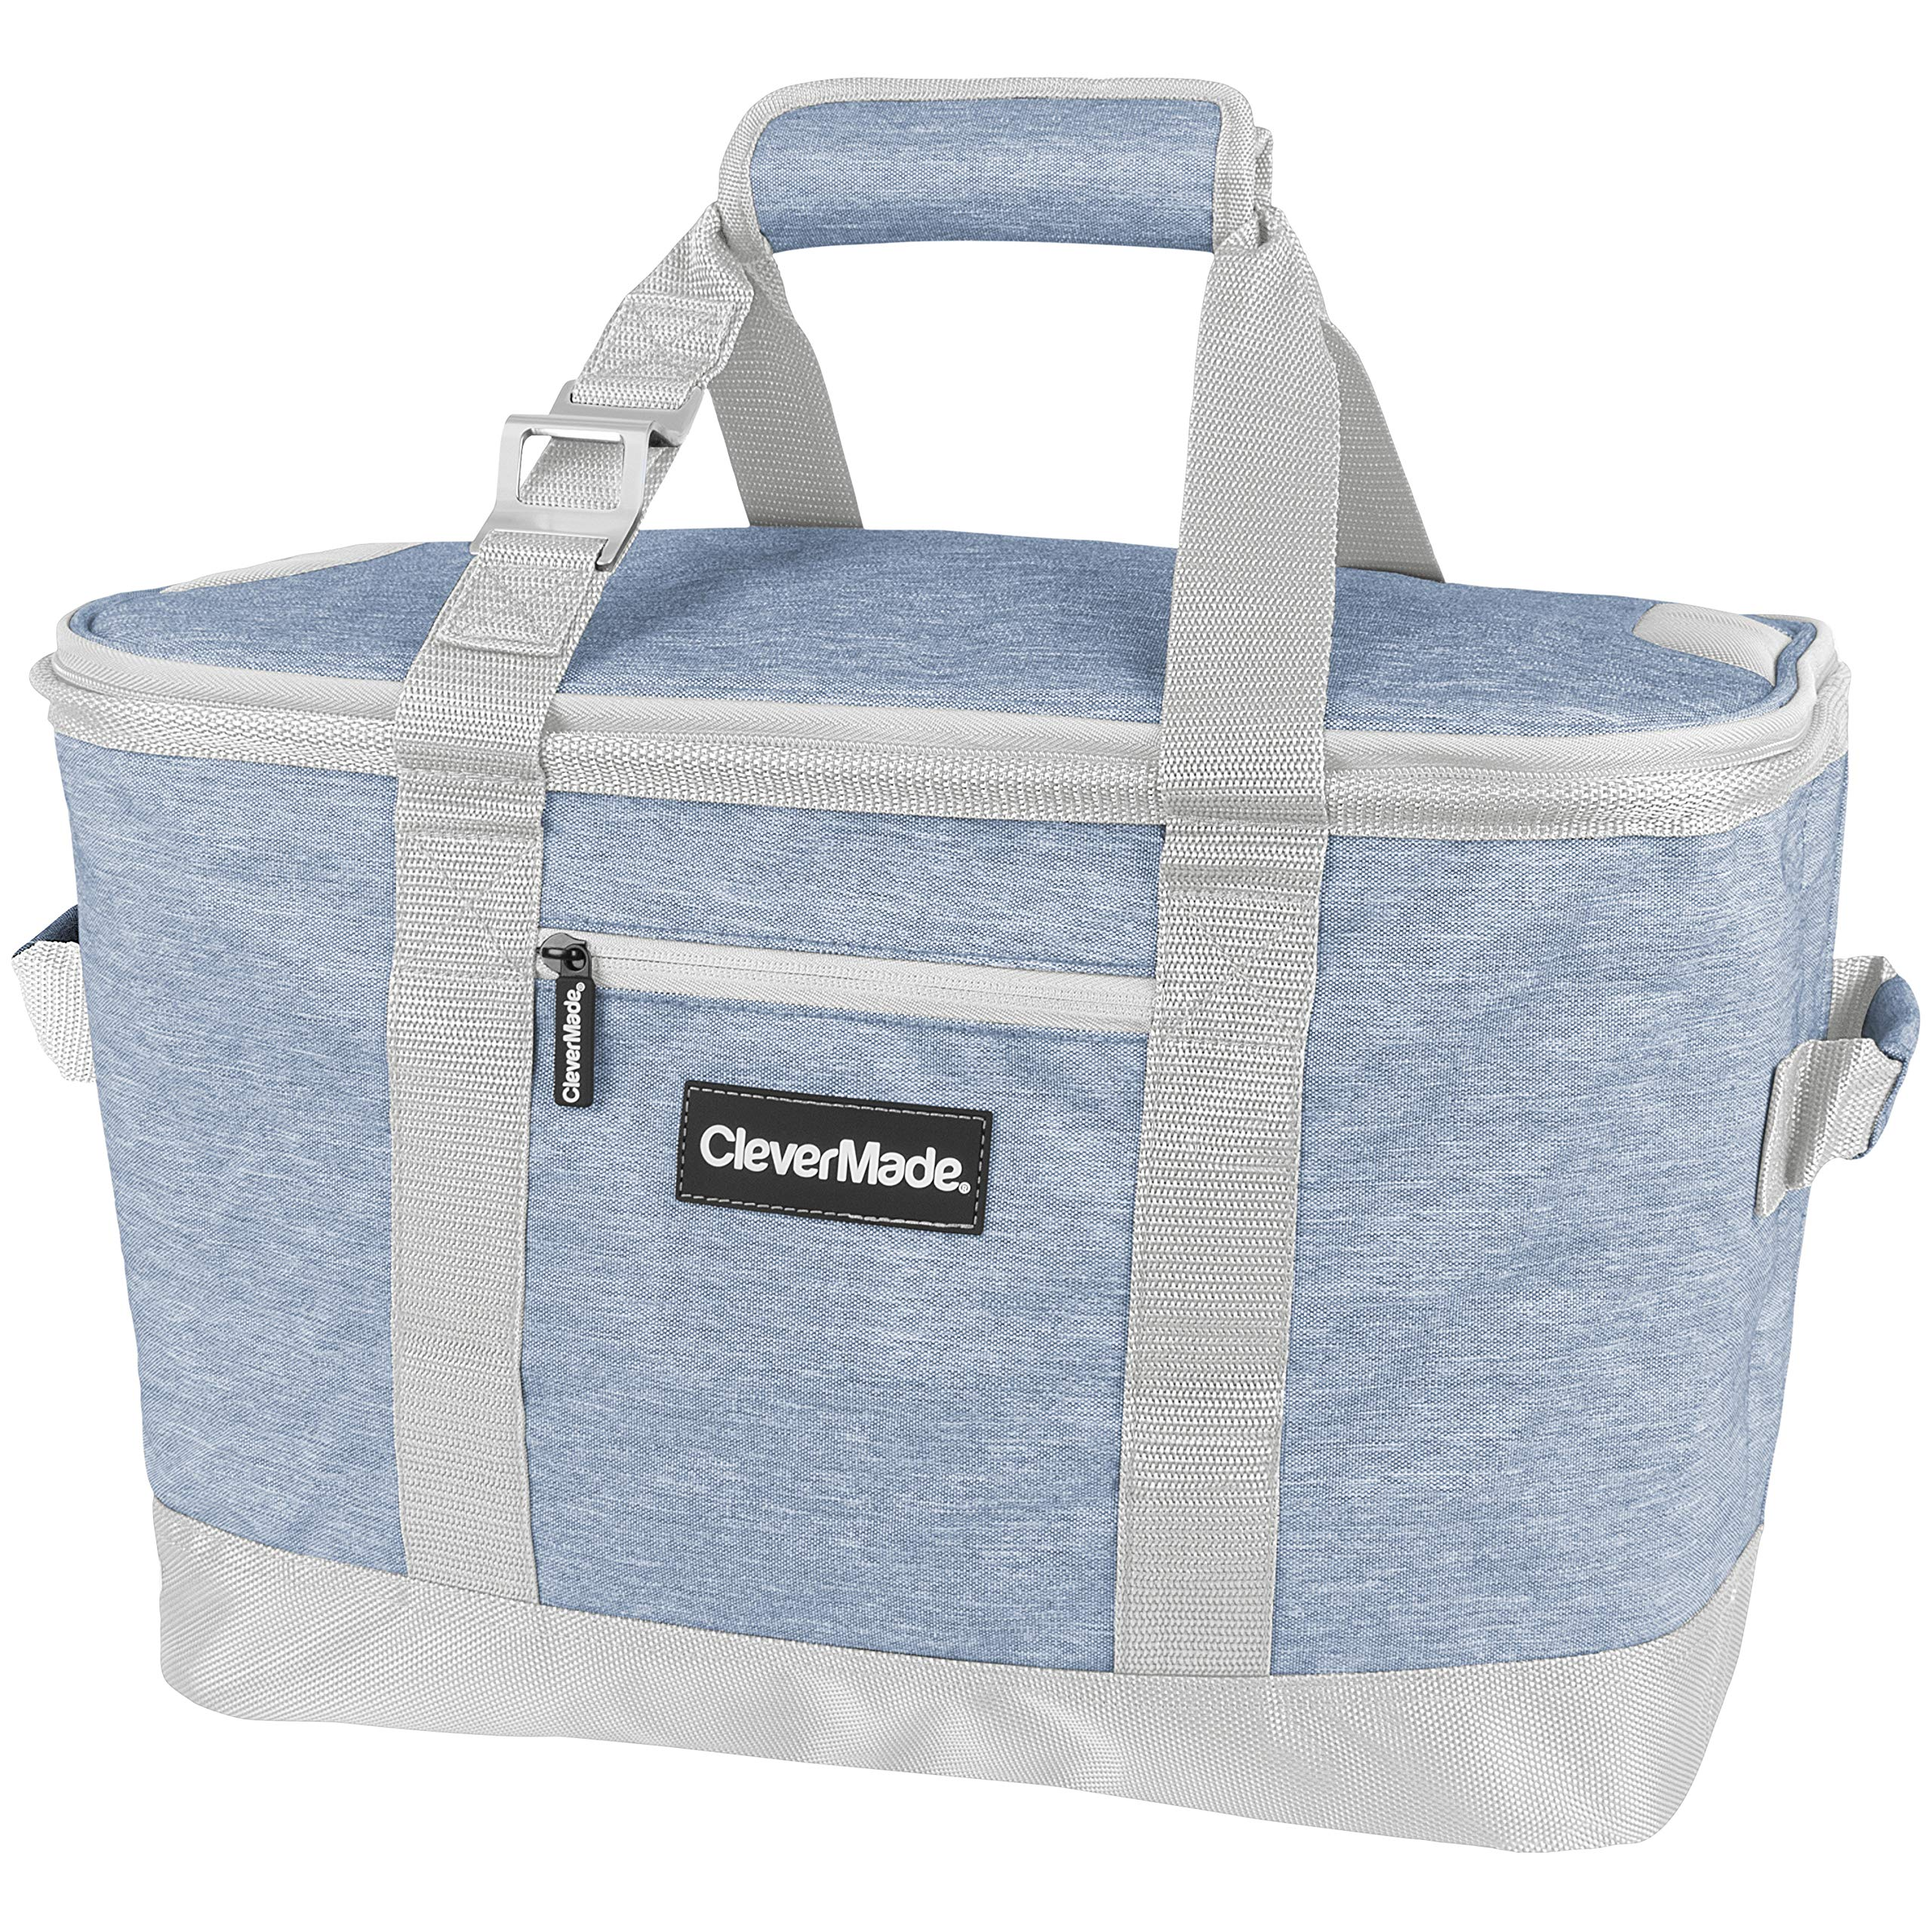 CleverMade Collapsible Cooler Bag: Insulated Leakproof 50 Can Soft Sided Portable Beverage Tote with Bottle Opener & Storage Pockets, Light Grey/Denim by CleverMade